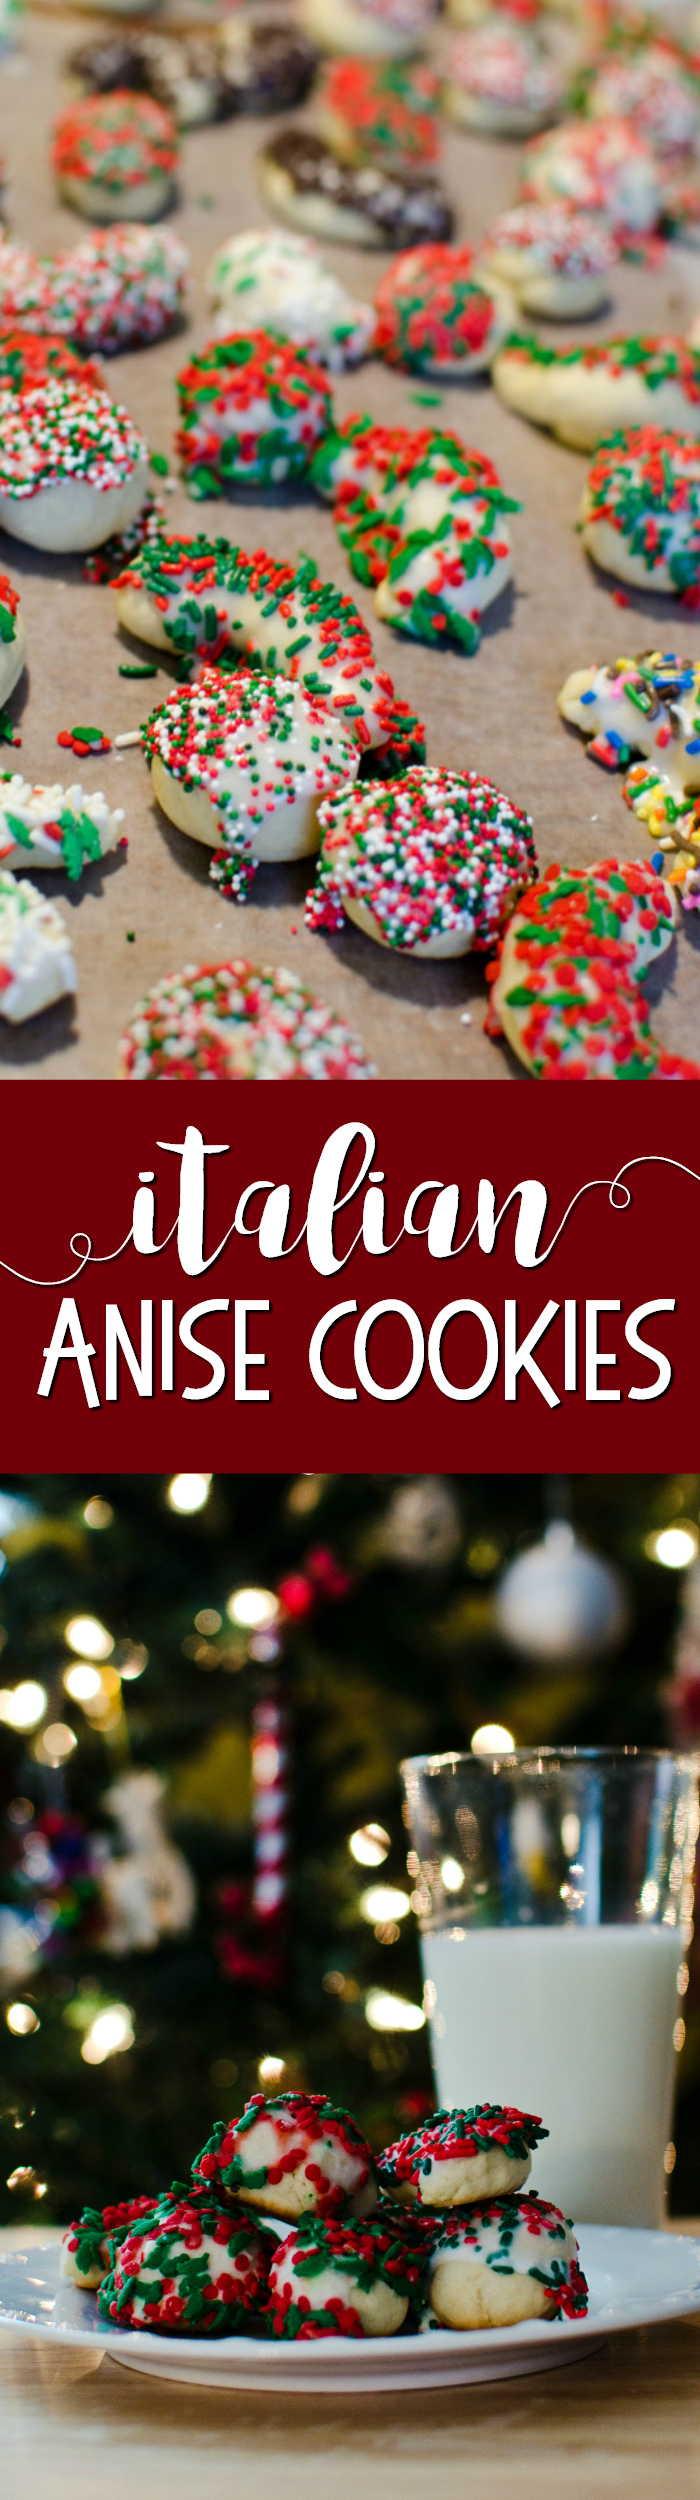 Traditional Italian anise cookies are quick and easy to make with just a few ingredients, including anise extract.